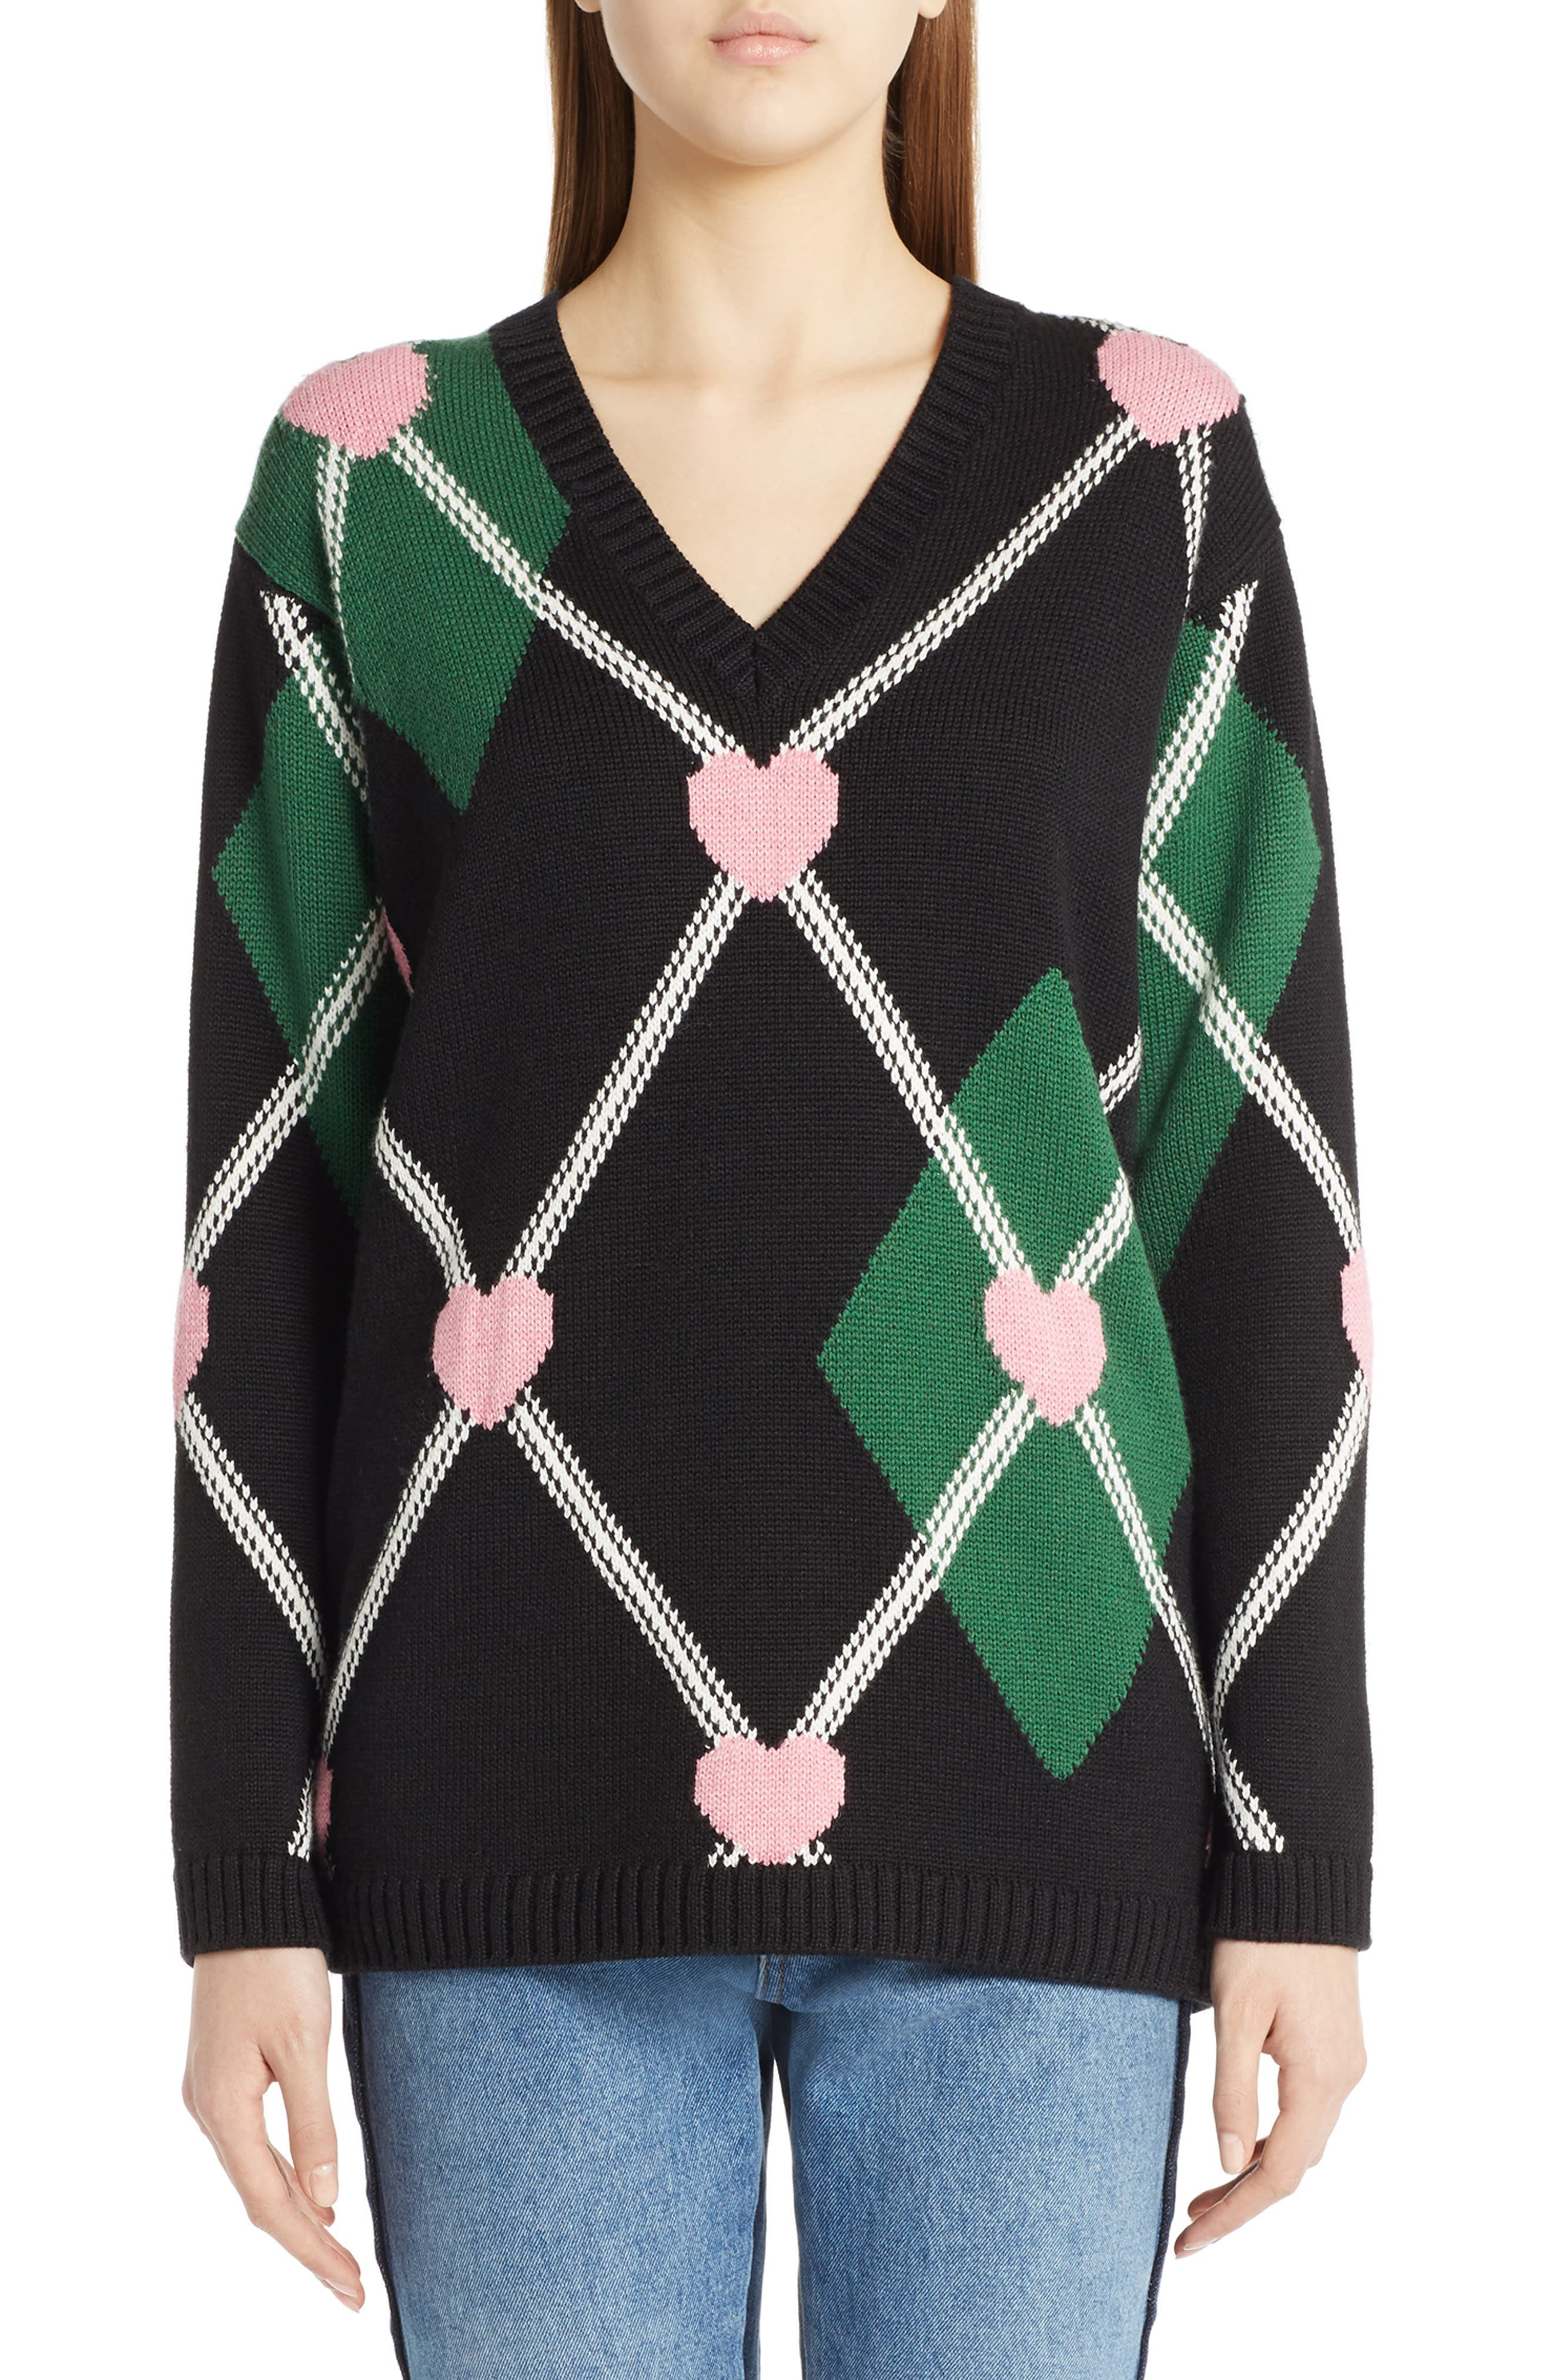 Alternate Image 1 Selected - MSGM Argyle Heart Sweater